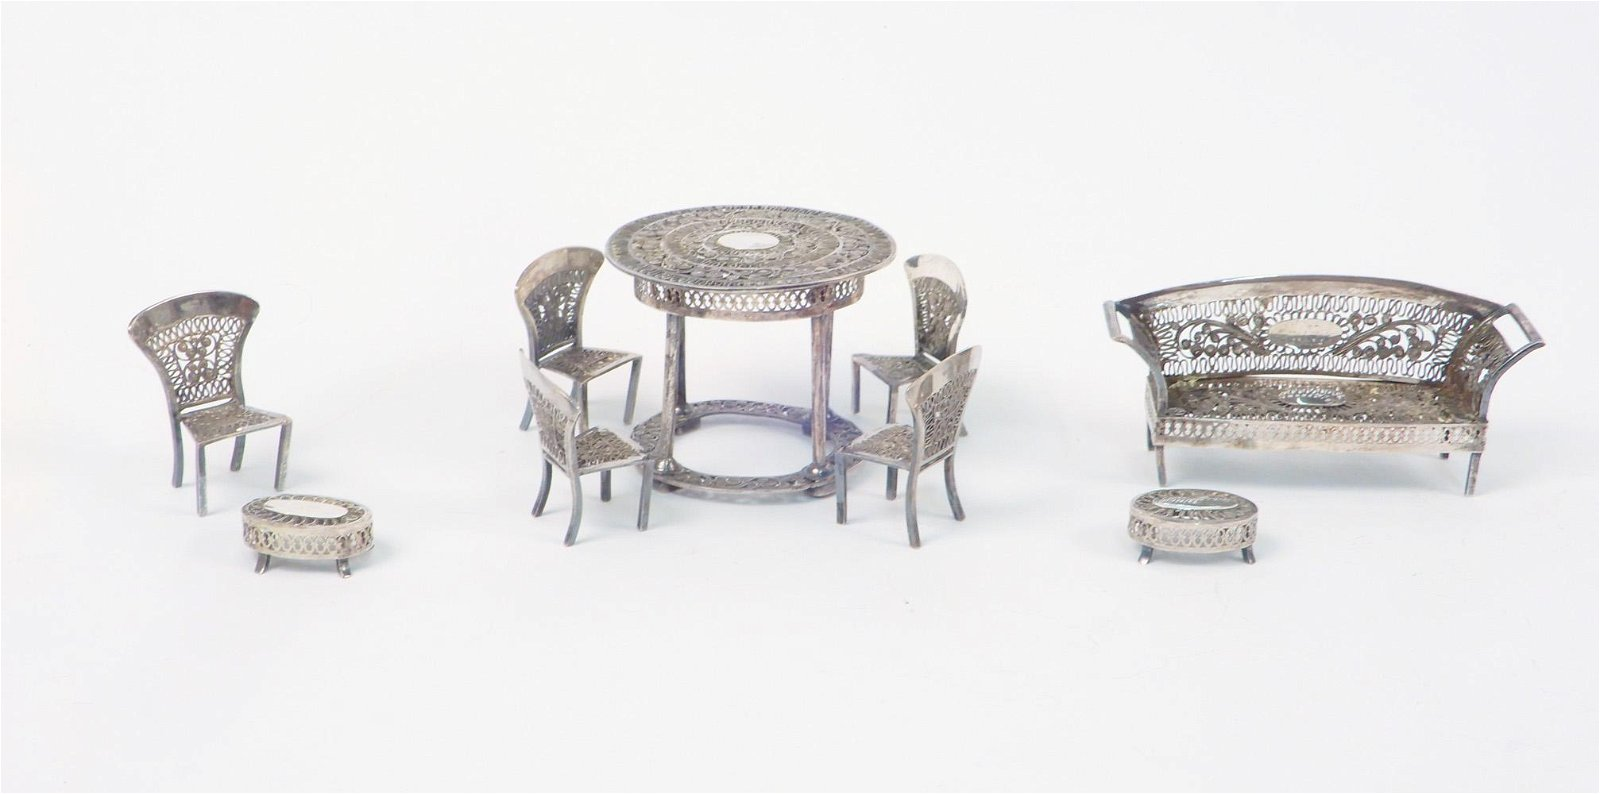 Ornate silver plate doll house furniture